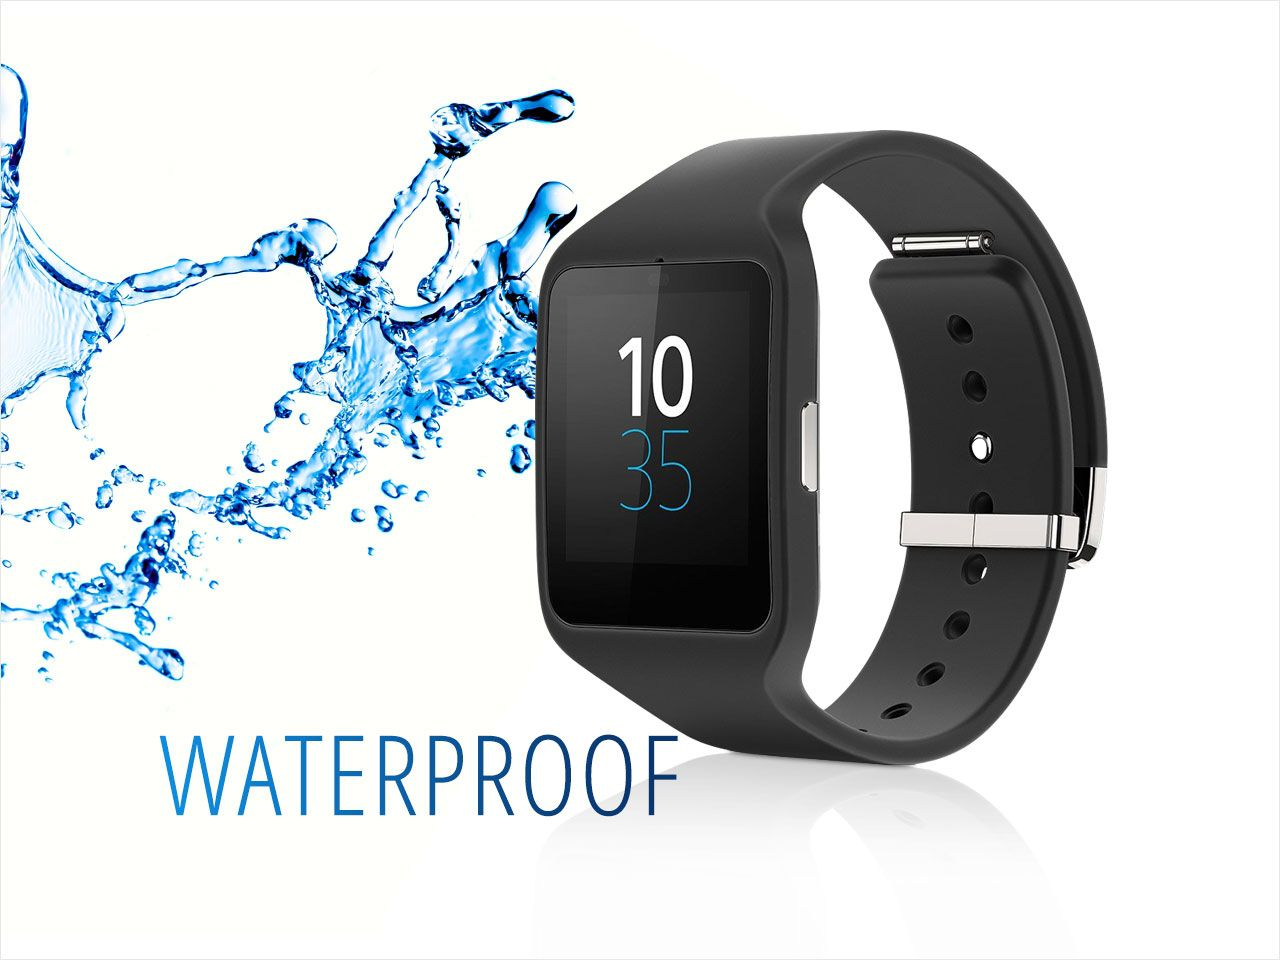 La smart watch 3 Sony SWR50 est une montre connectée waterproof avec un indice de protection IP68